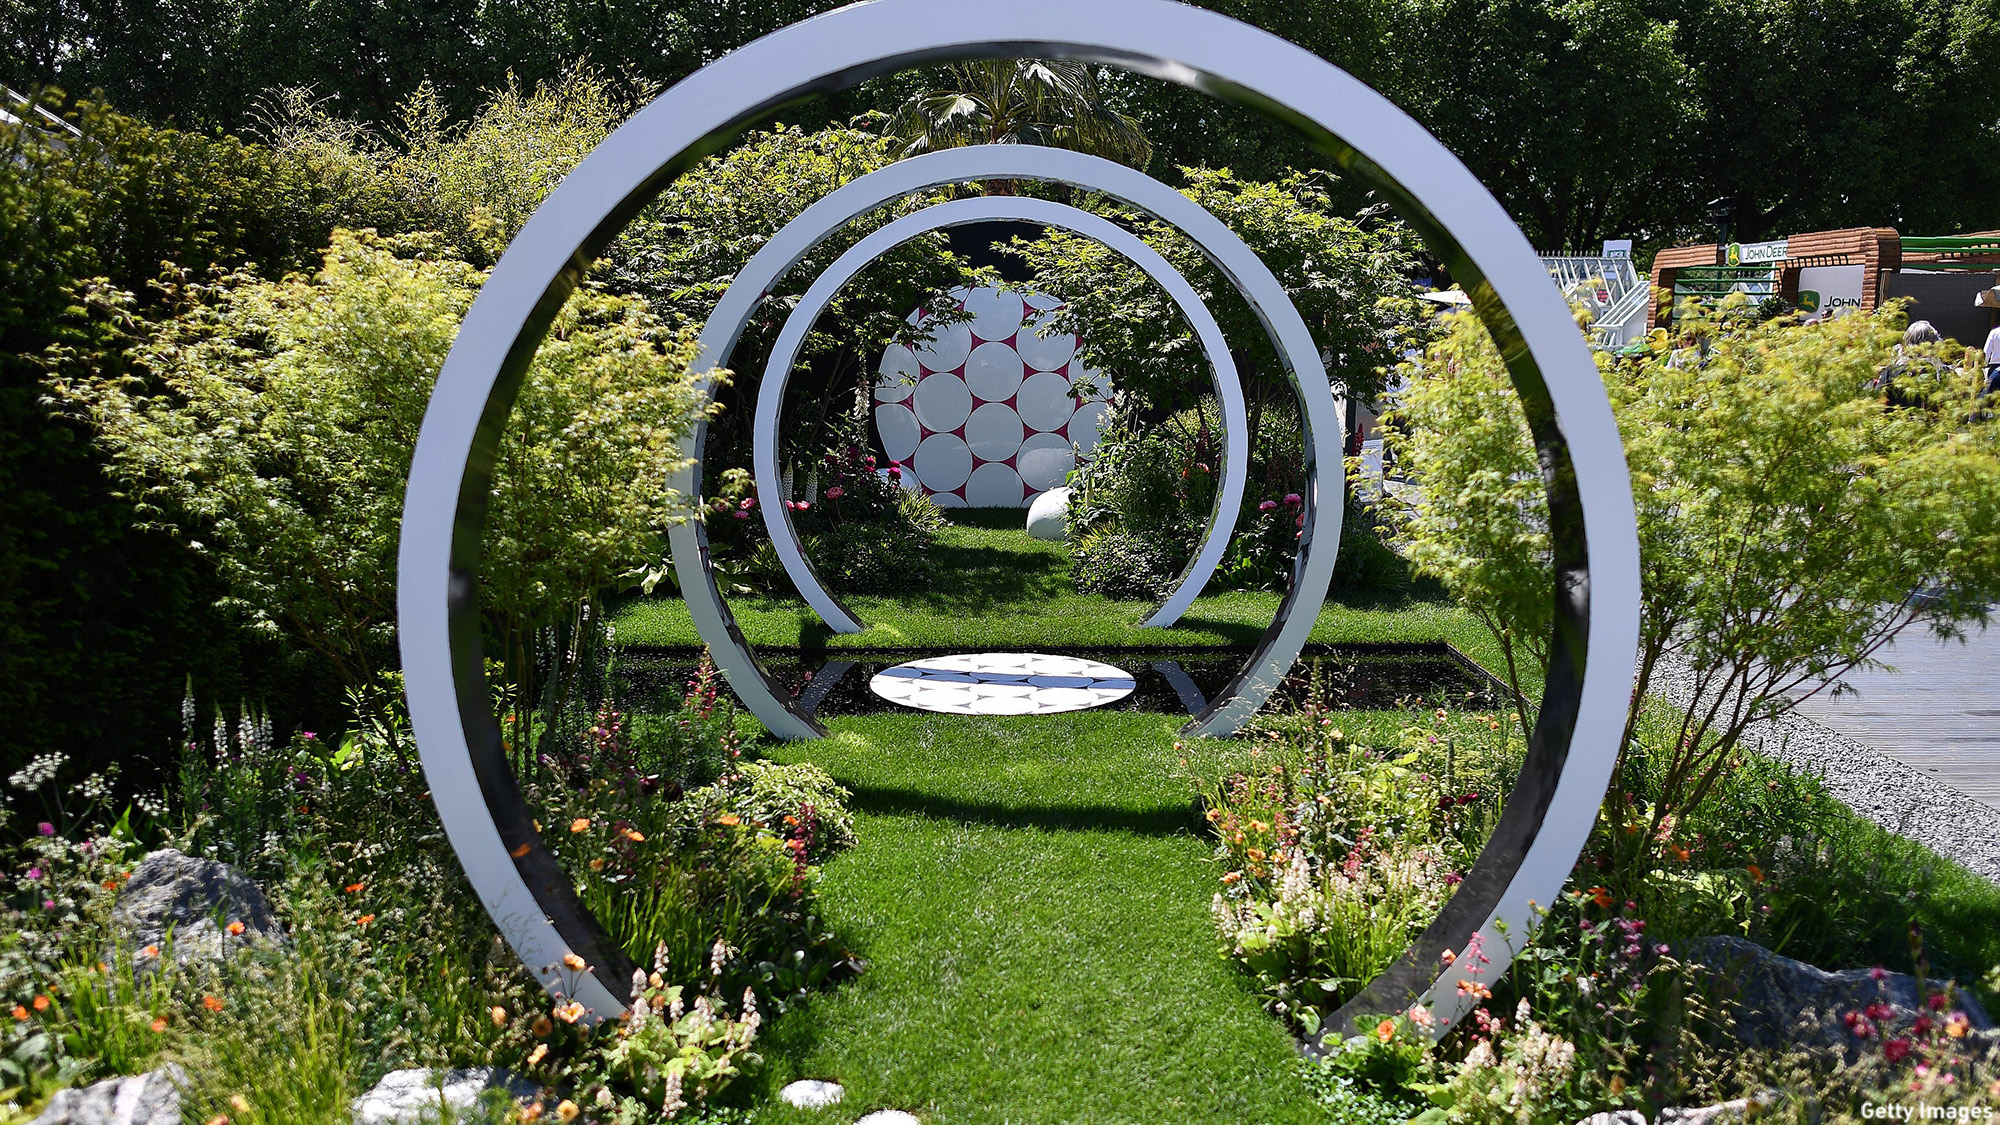 BRITAIN-ENTERAINMENT-ART-CHELSEA FLOWER SHOW